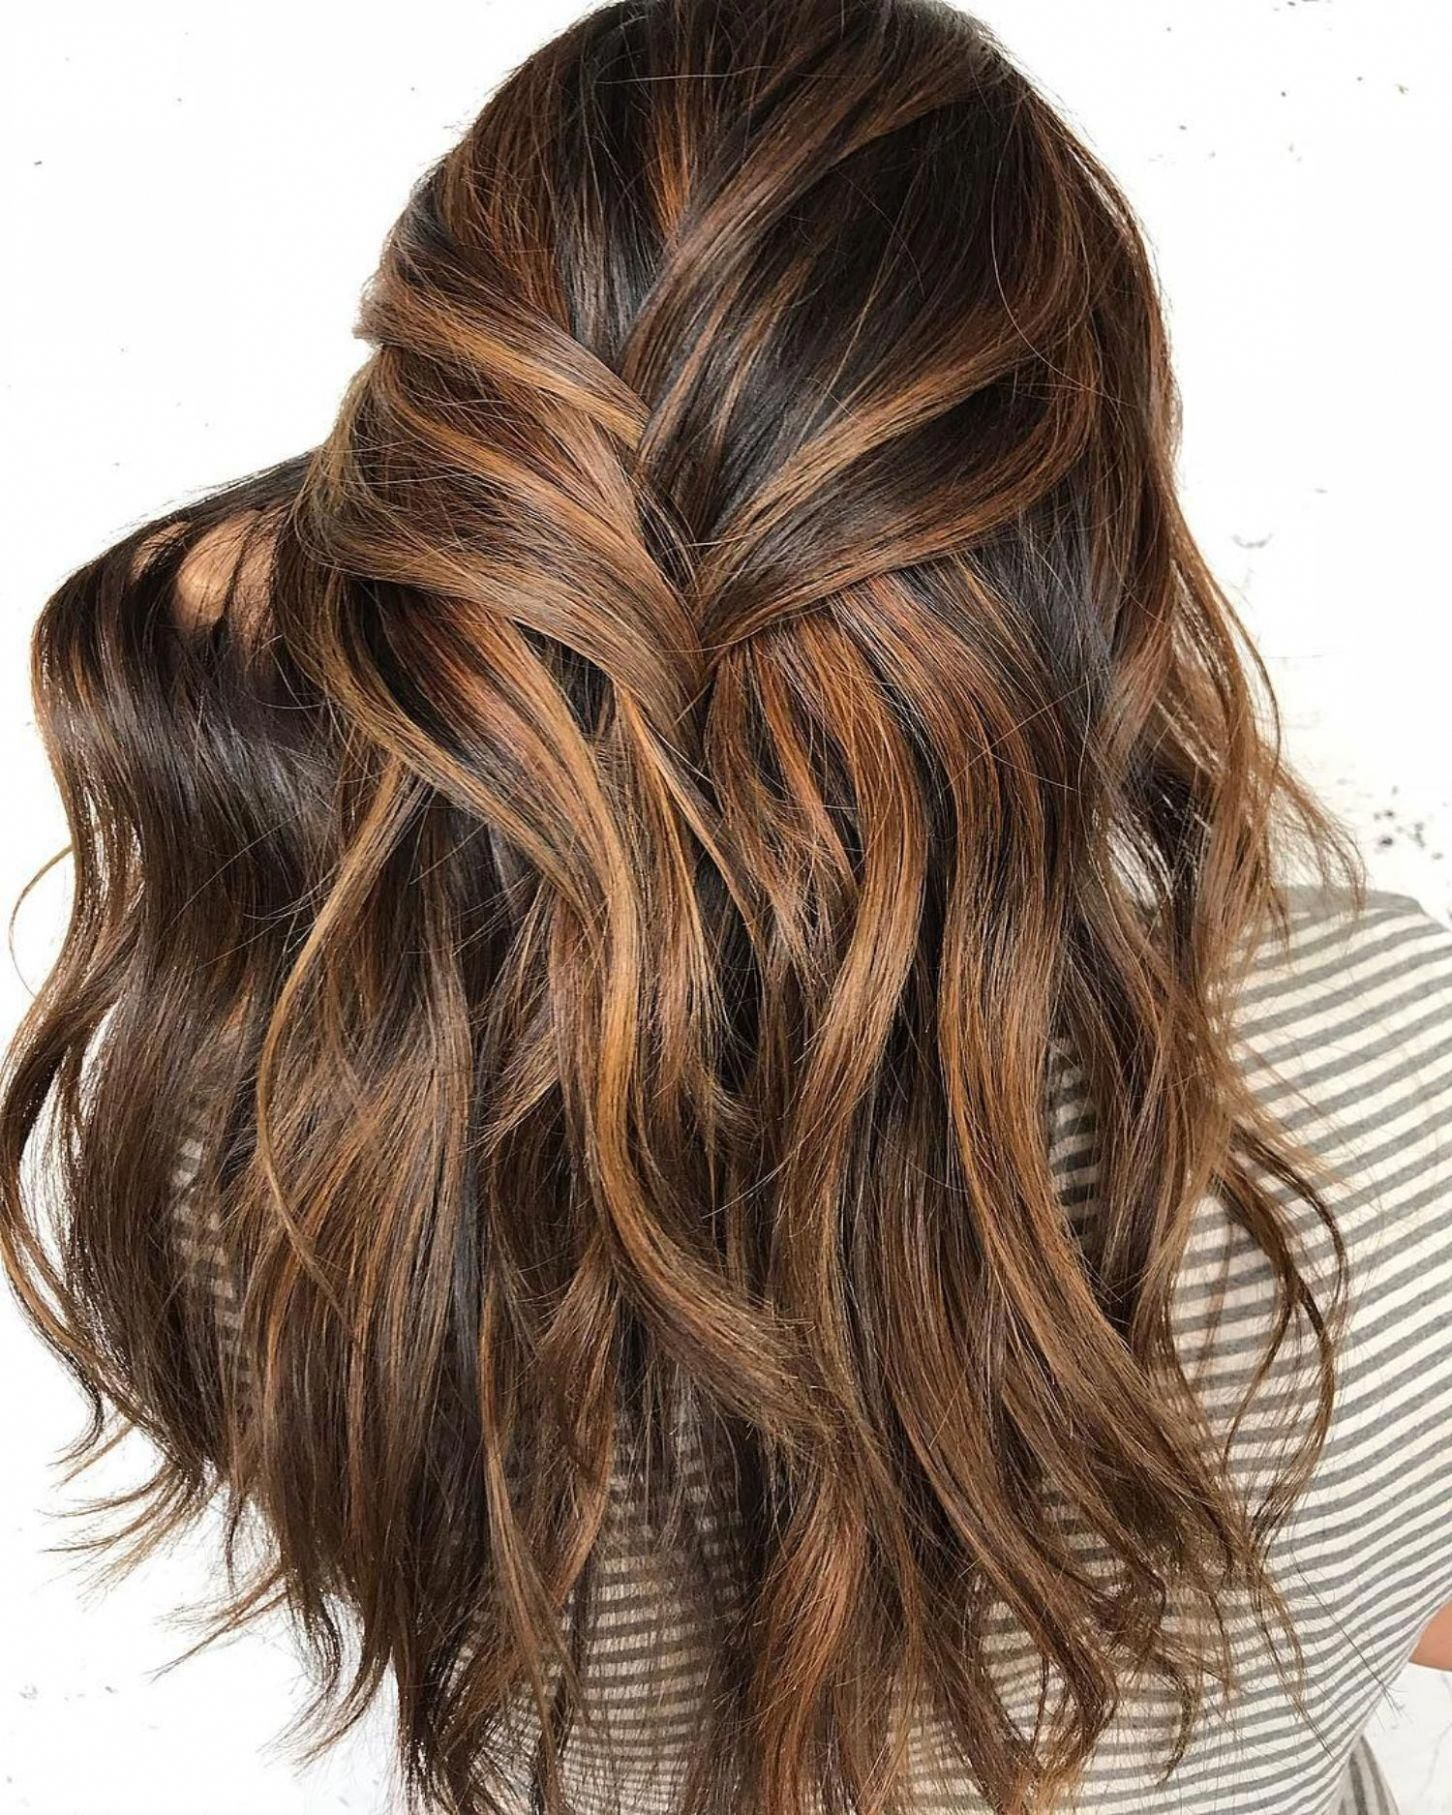 Chocolate Hair With Toffee Highlights Haircolorideasforbrunettes Dark Brown Hair With Caramel Highlights Chocolate Brown Hair Color Brown Hair Looks